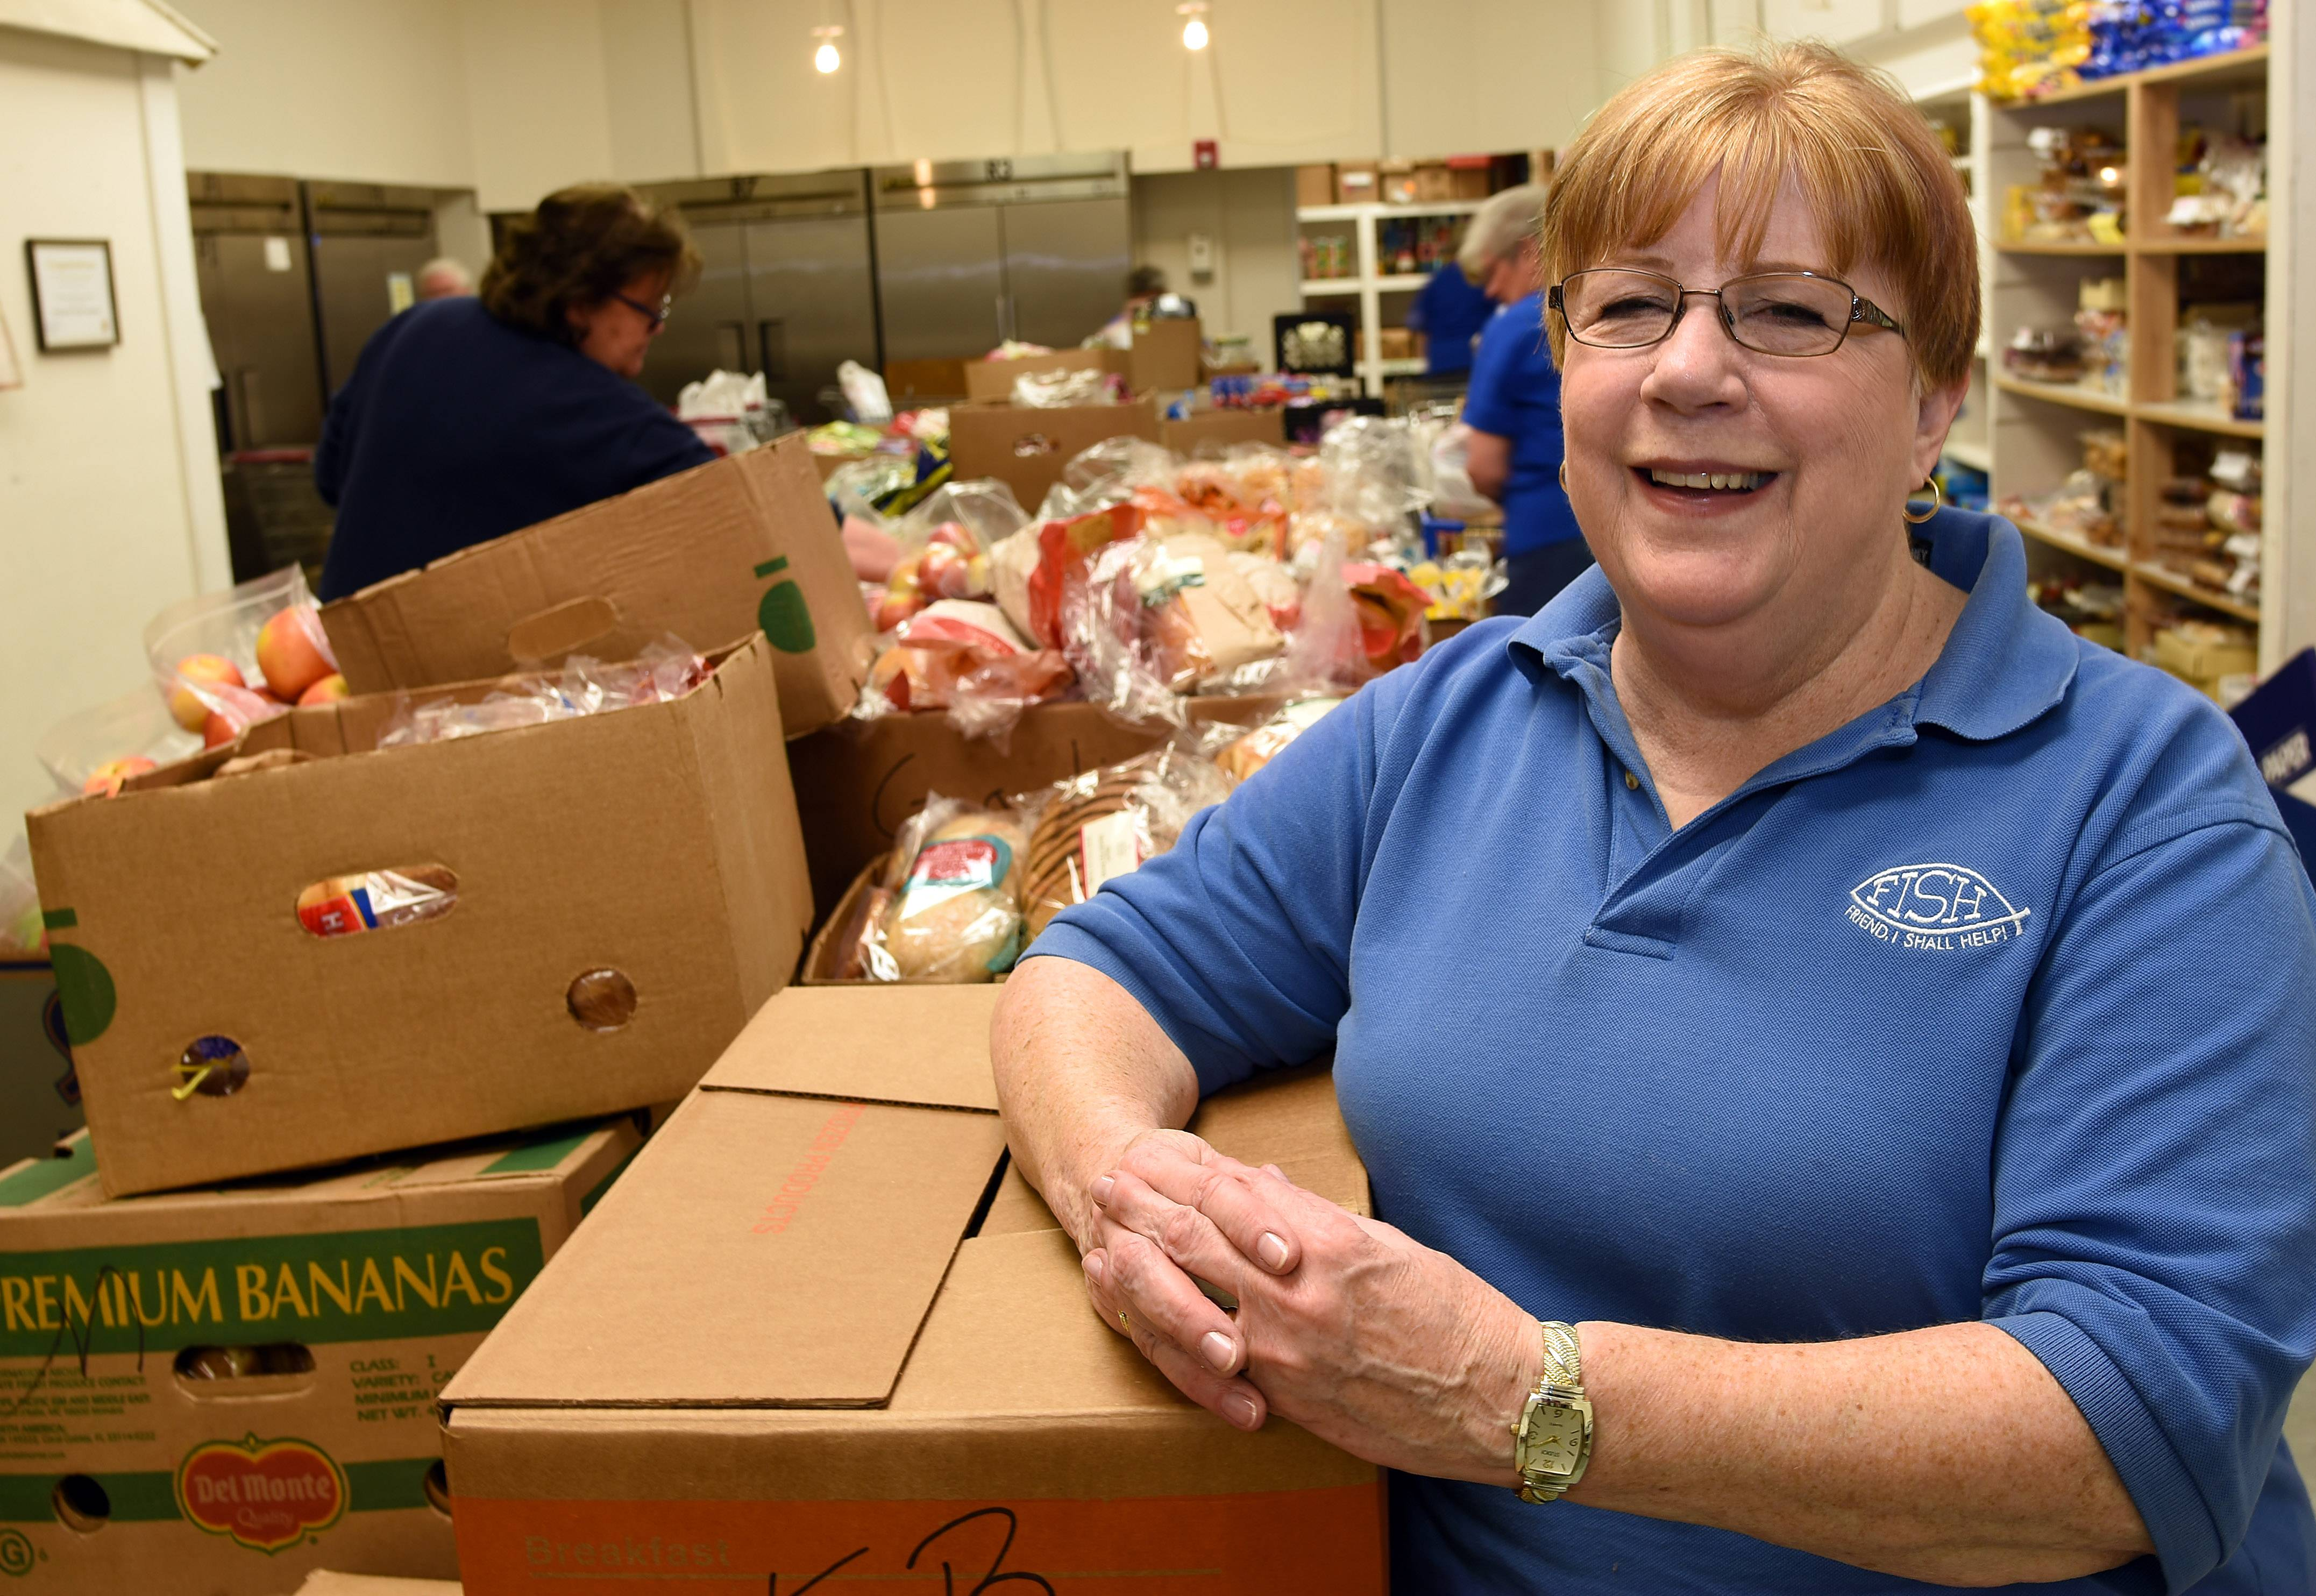 FISH Food Pantry in Carpentersville has seen a significant decline in donations in the wake of several national and global disasters, said nonprofit President Mary Graziano.